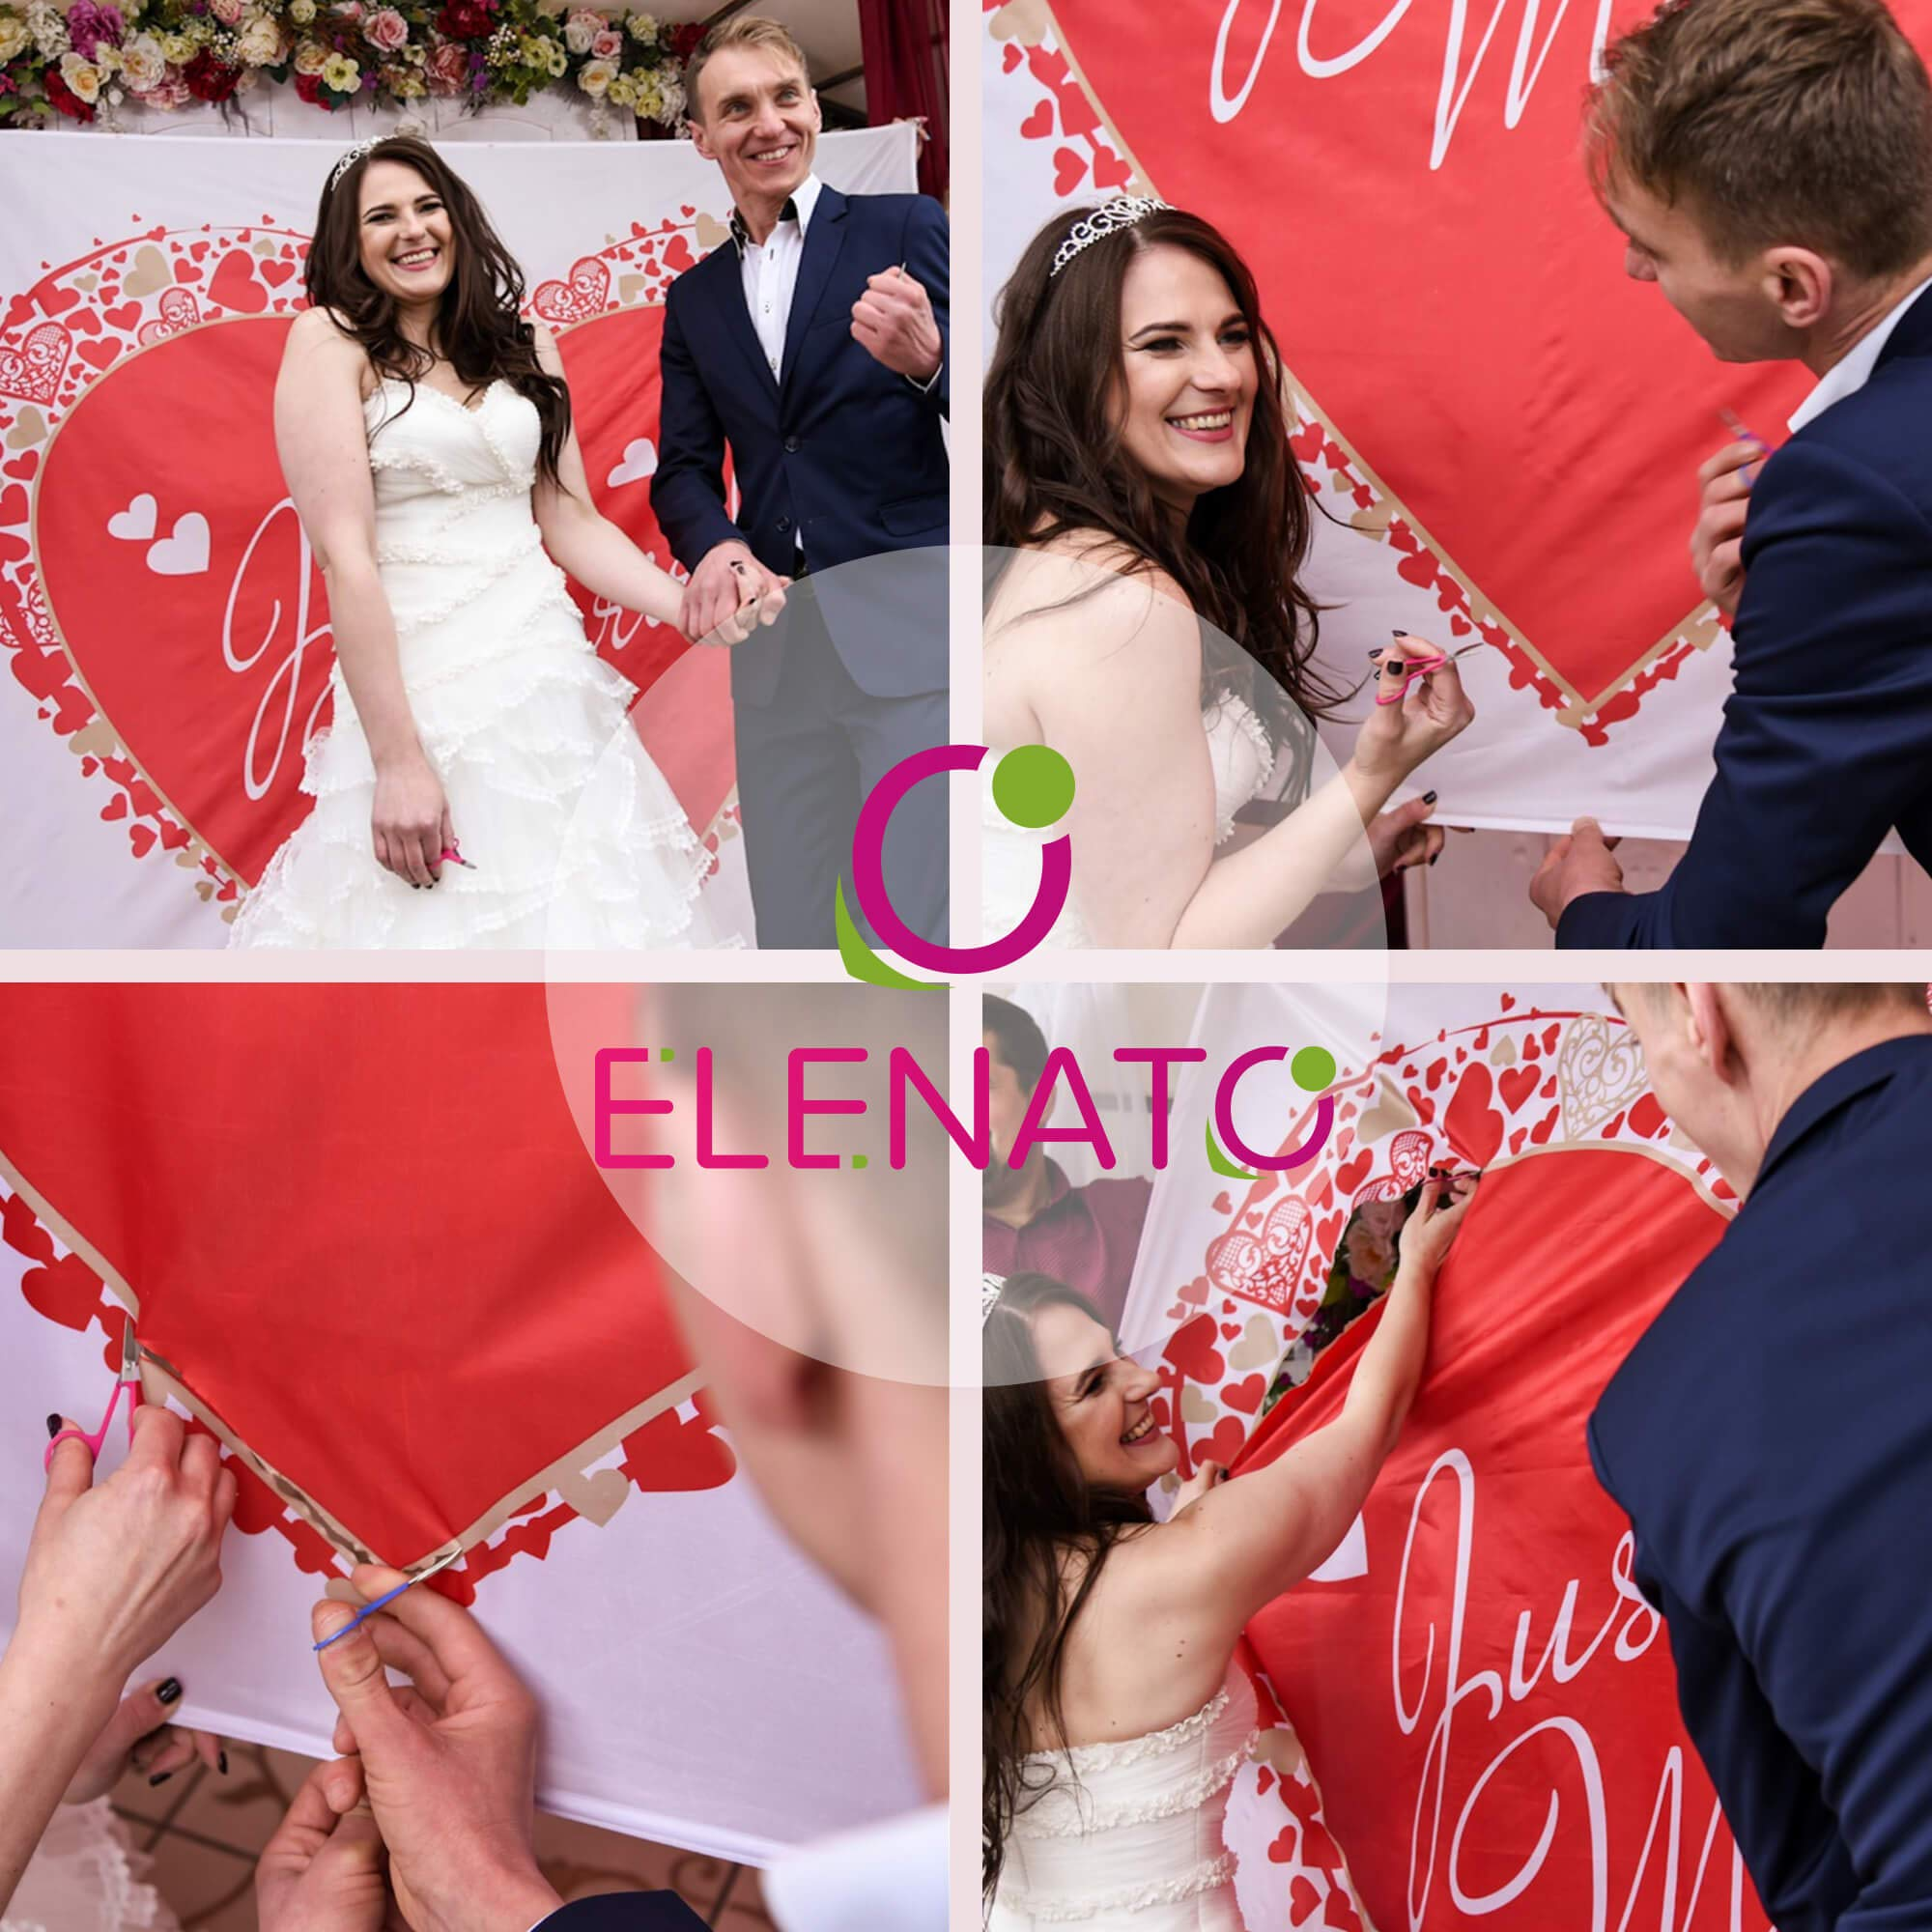 Elenato Bridal Shower Gift is a Perfect Wedding Gift and Eye Catching Backdrop for Photography.